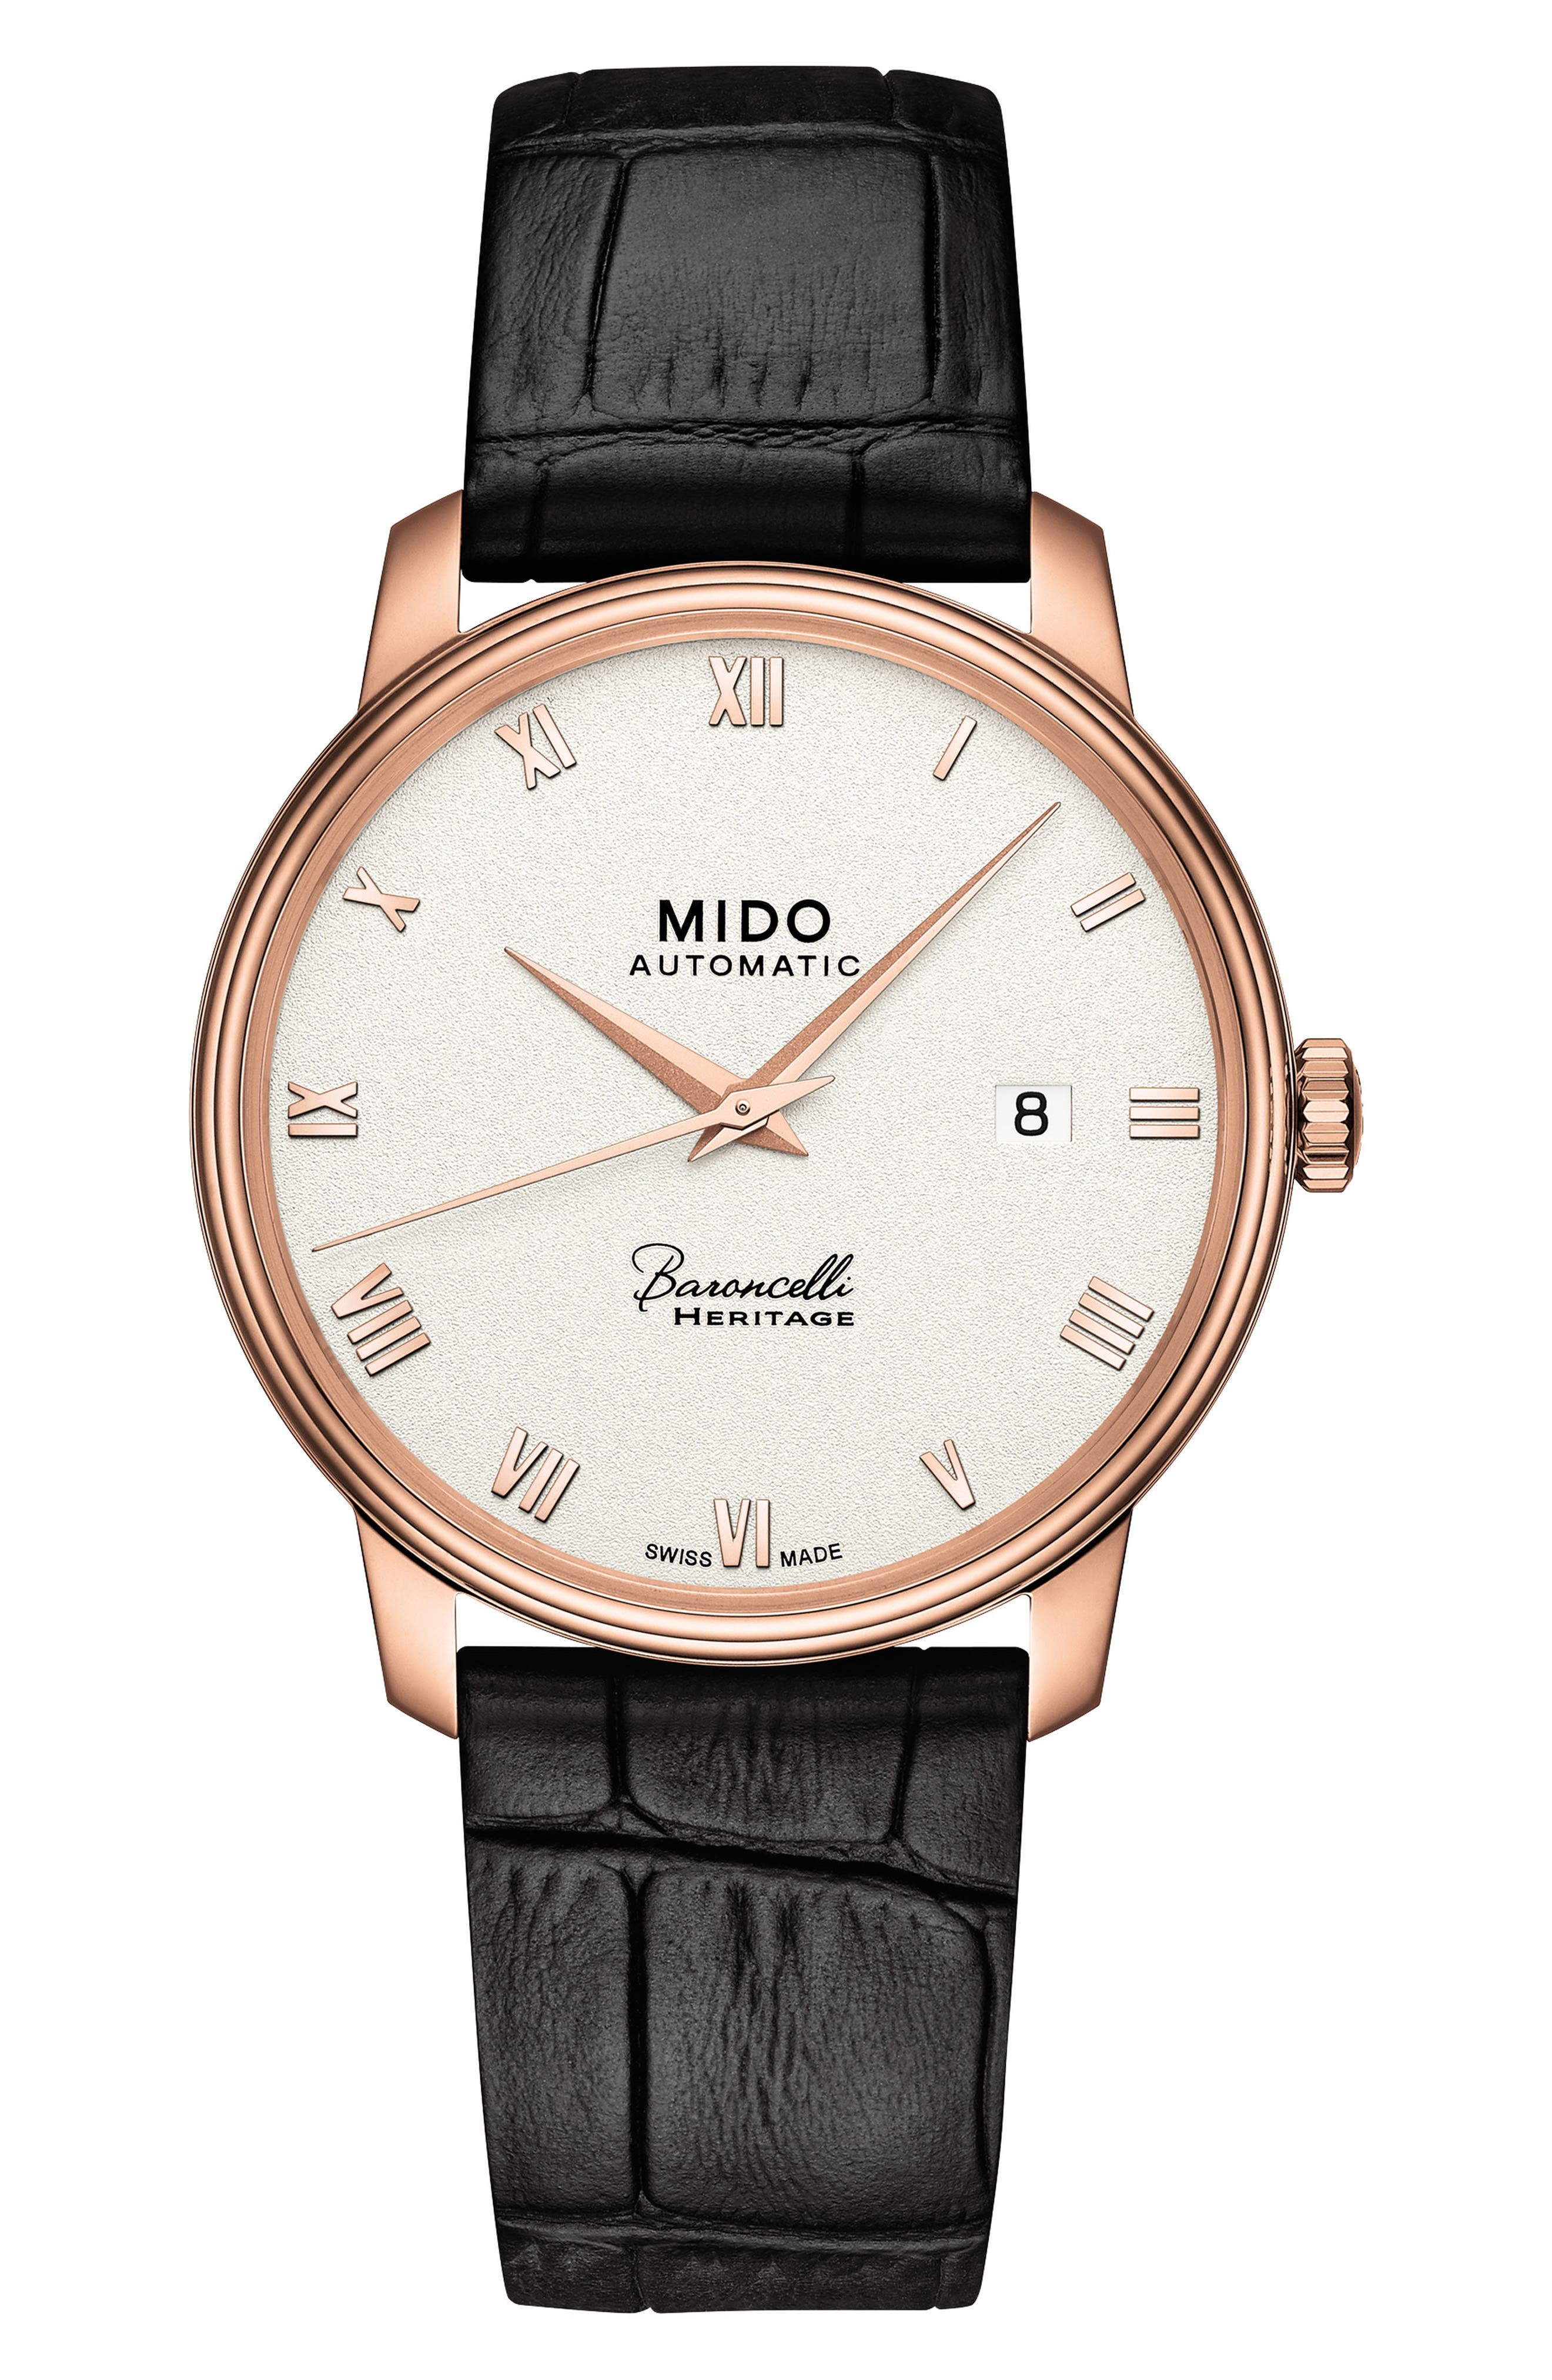 Baroncelli Heritage Automatic Leather Strap Watch, 39mm,                         Main,                         color, BLACK/ BEIGE/ ROSE GOLD